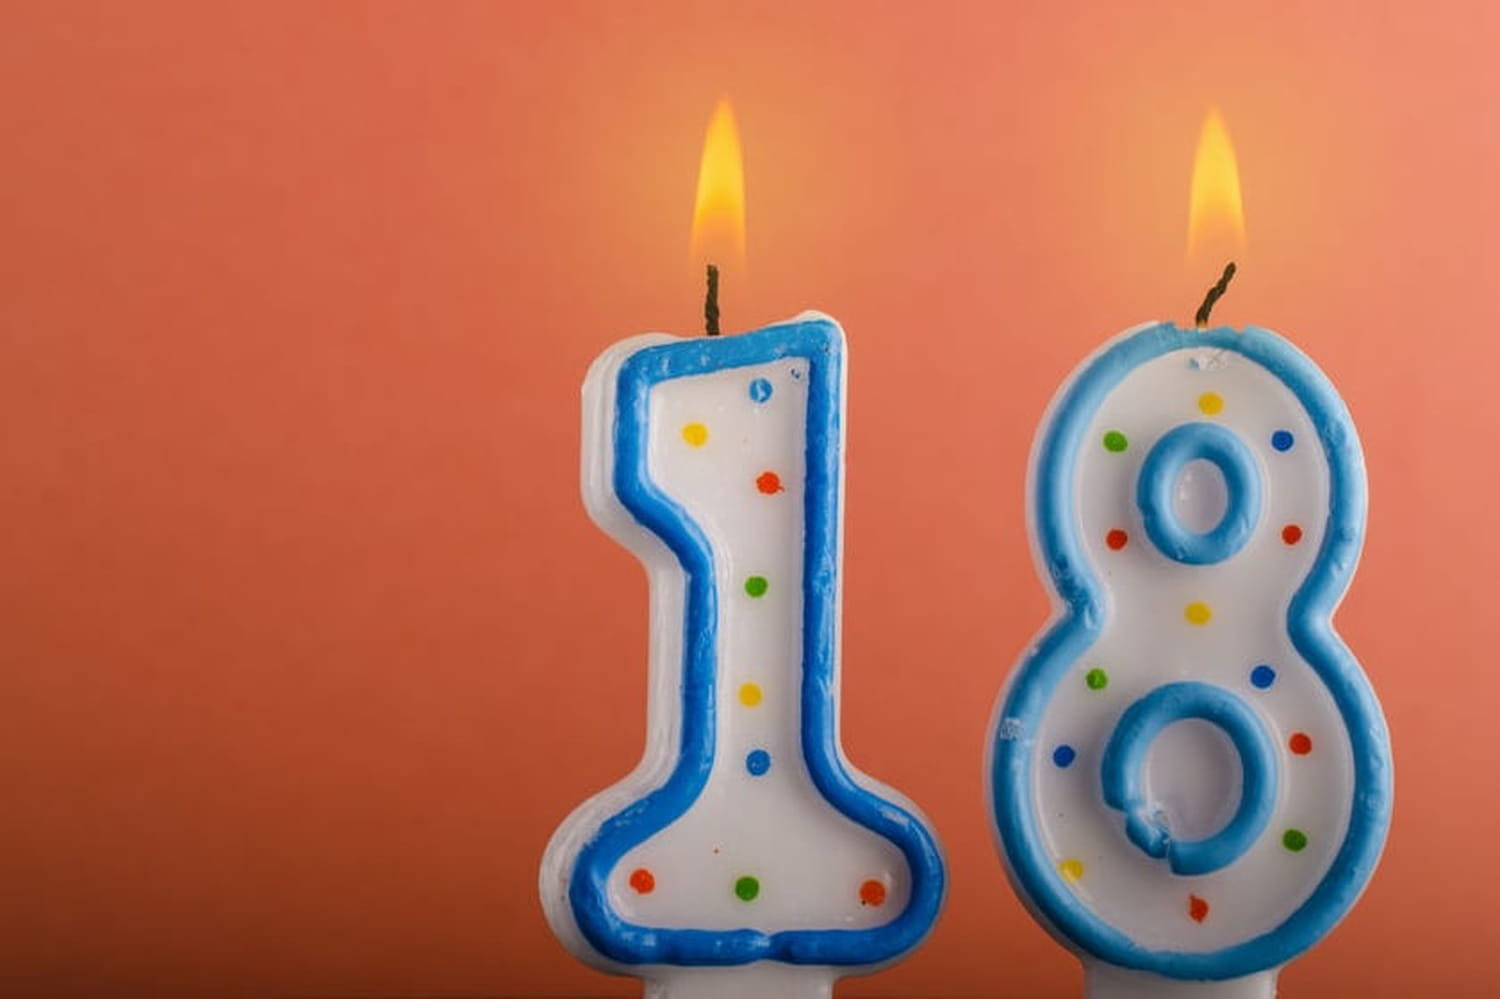 18 Years old Birthday Text Messages - Free Birthday Texts to wish them